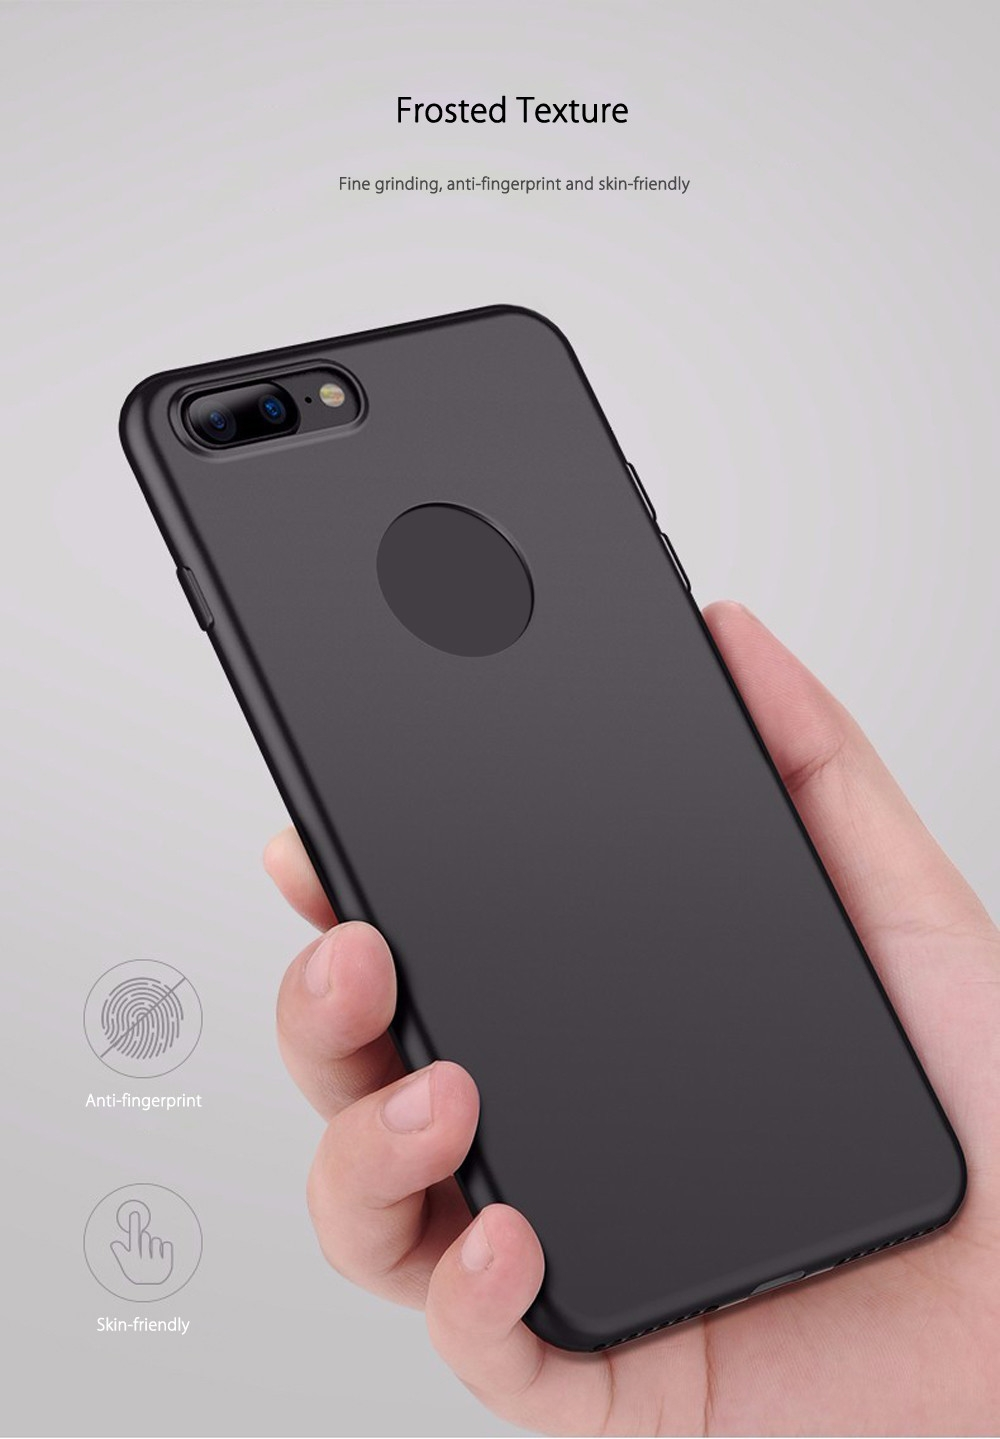 CAFELE Touch Series Case Protective TPU Skin for iPhone 7 Plus